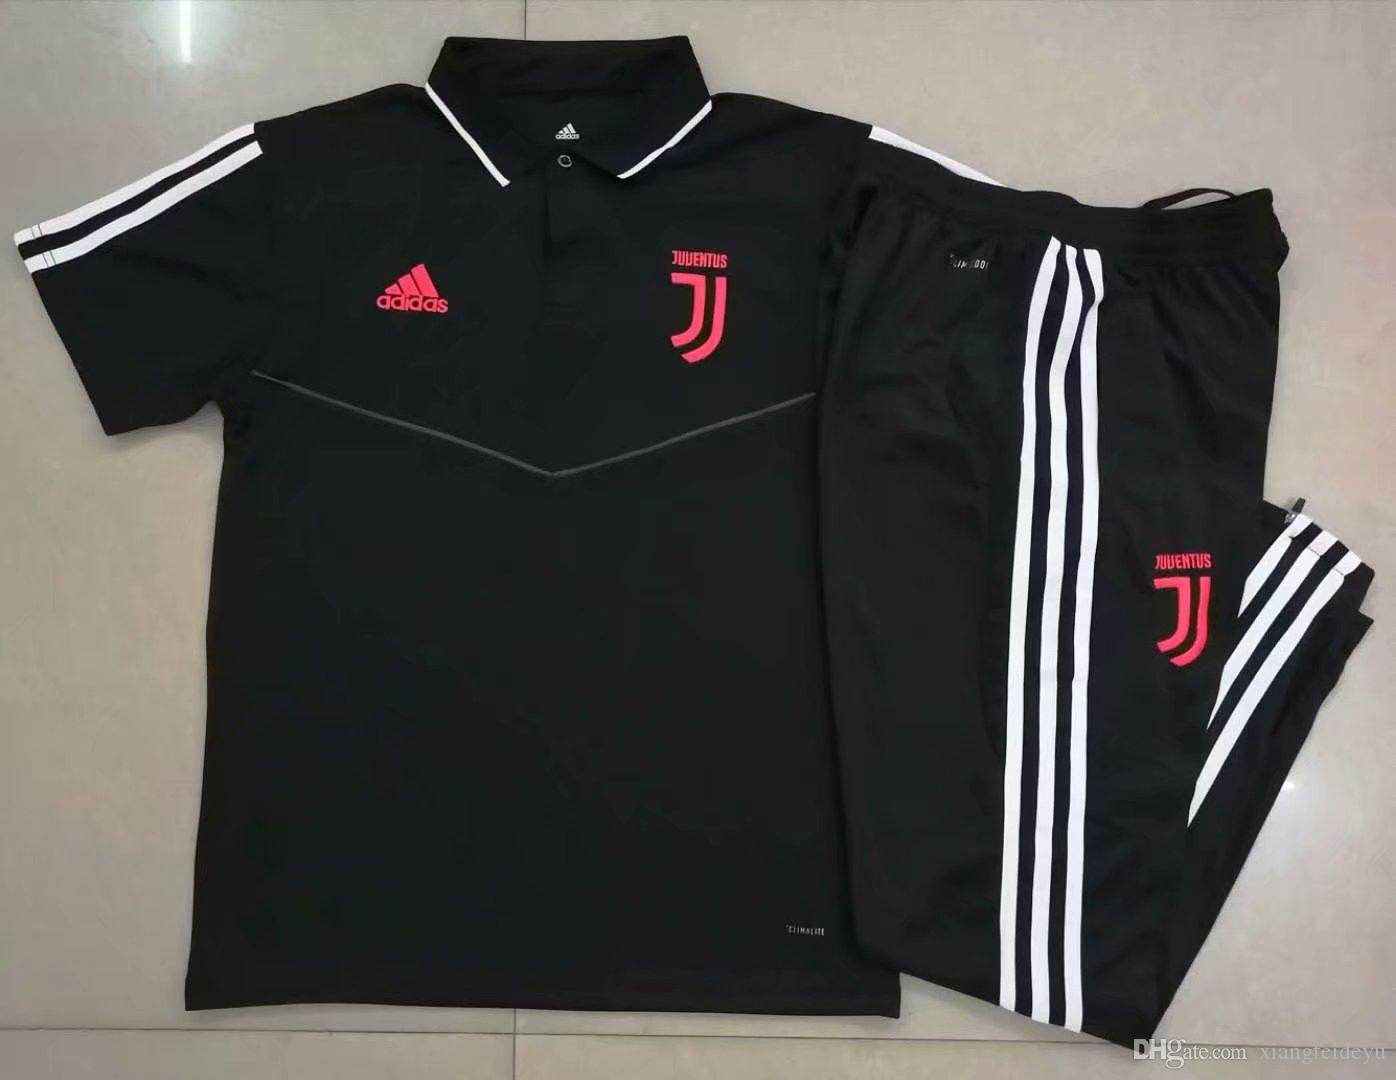 Best Polo Shirts 2020 Wholse Sale Best Quality Newest 19 20 Juve Polo Shirts 2019 2020